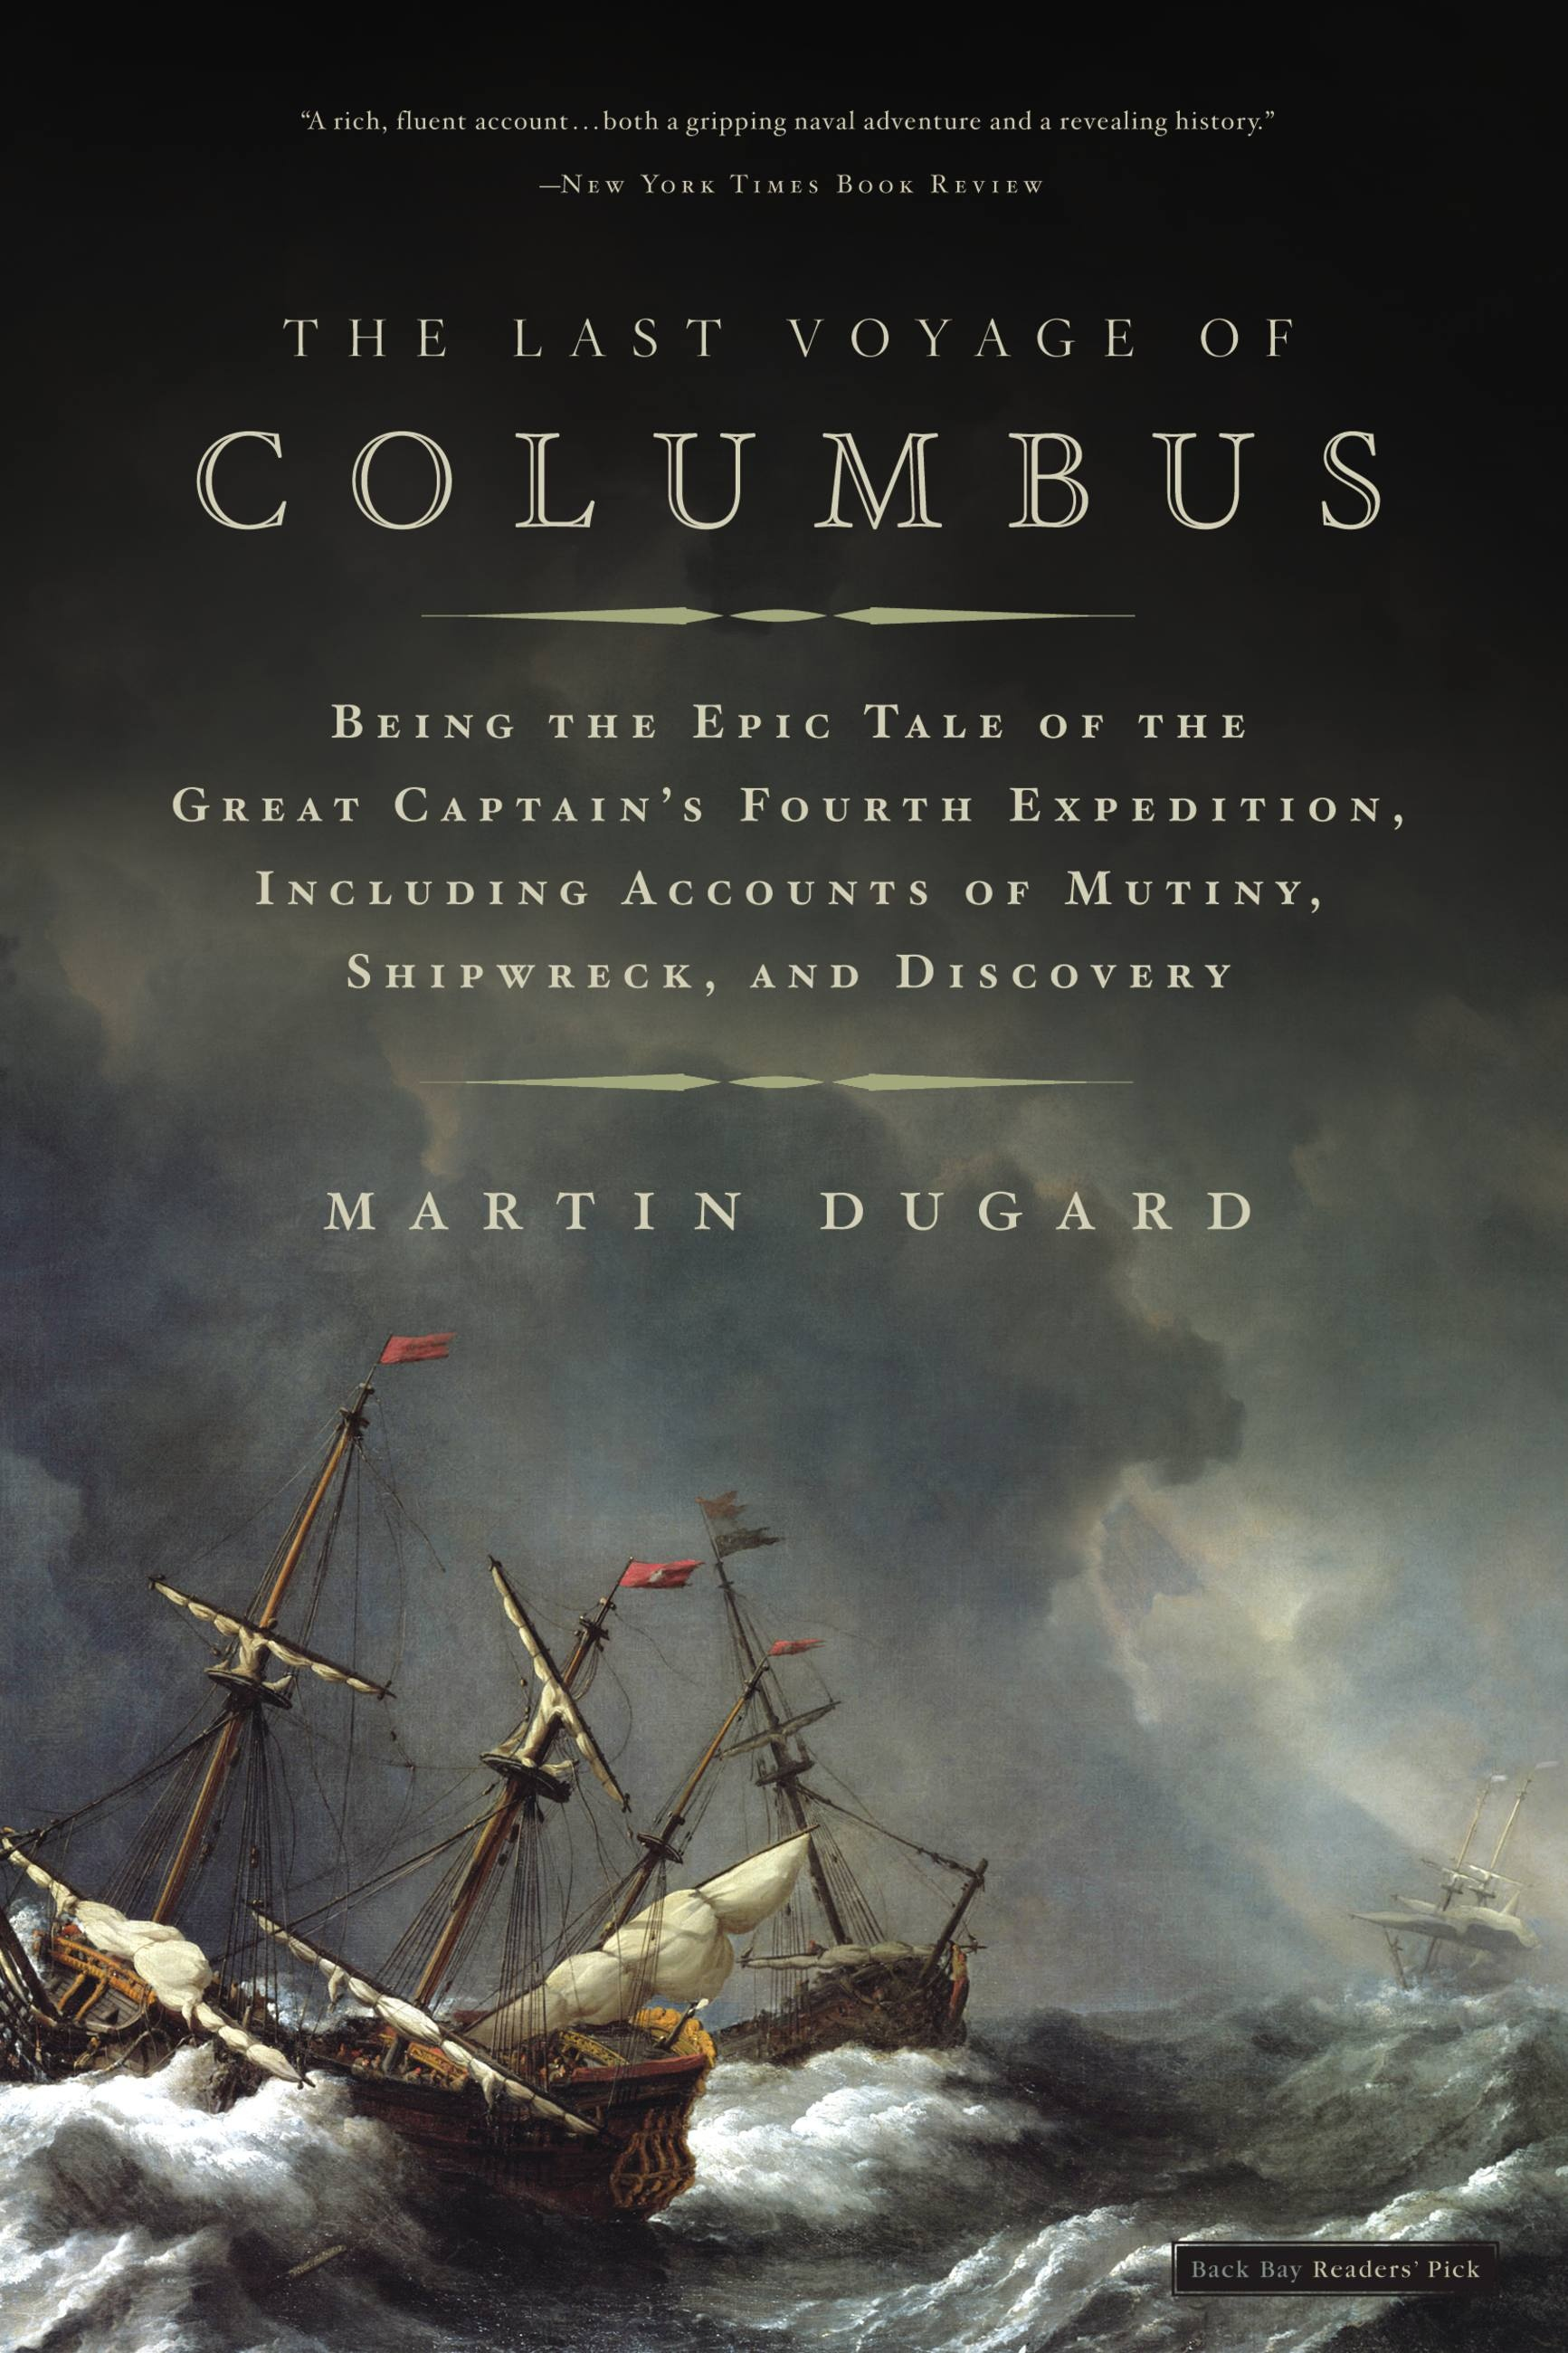 Last Voyage of Columbus, The